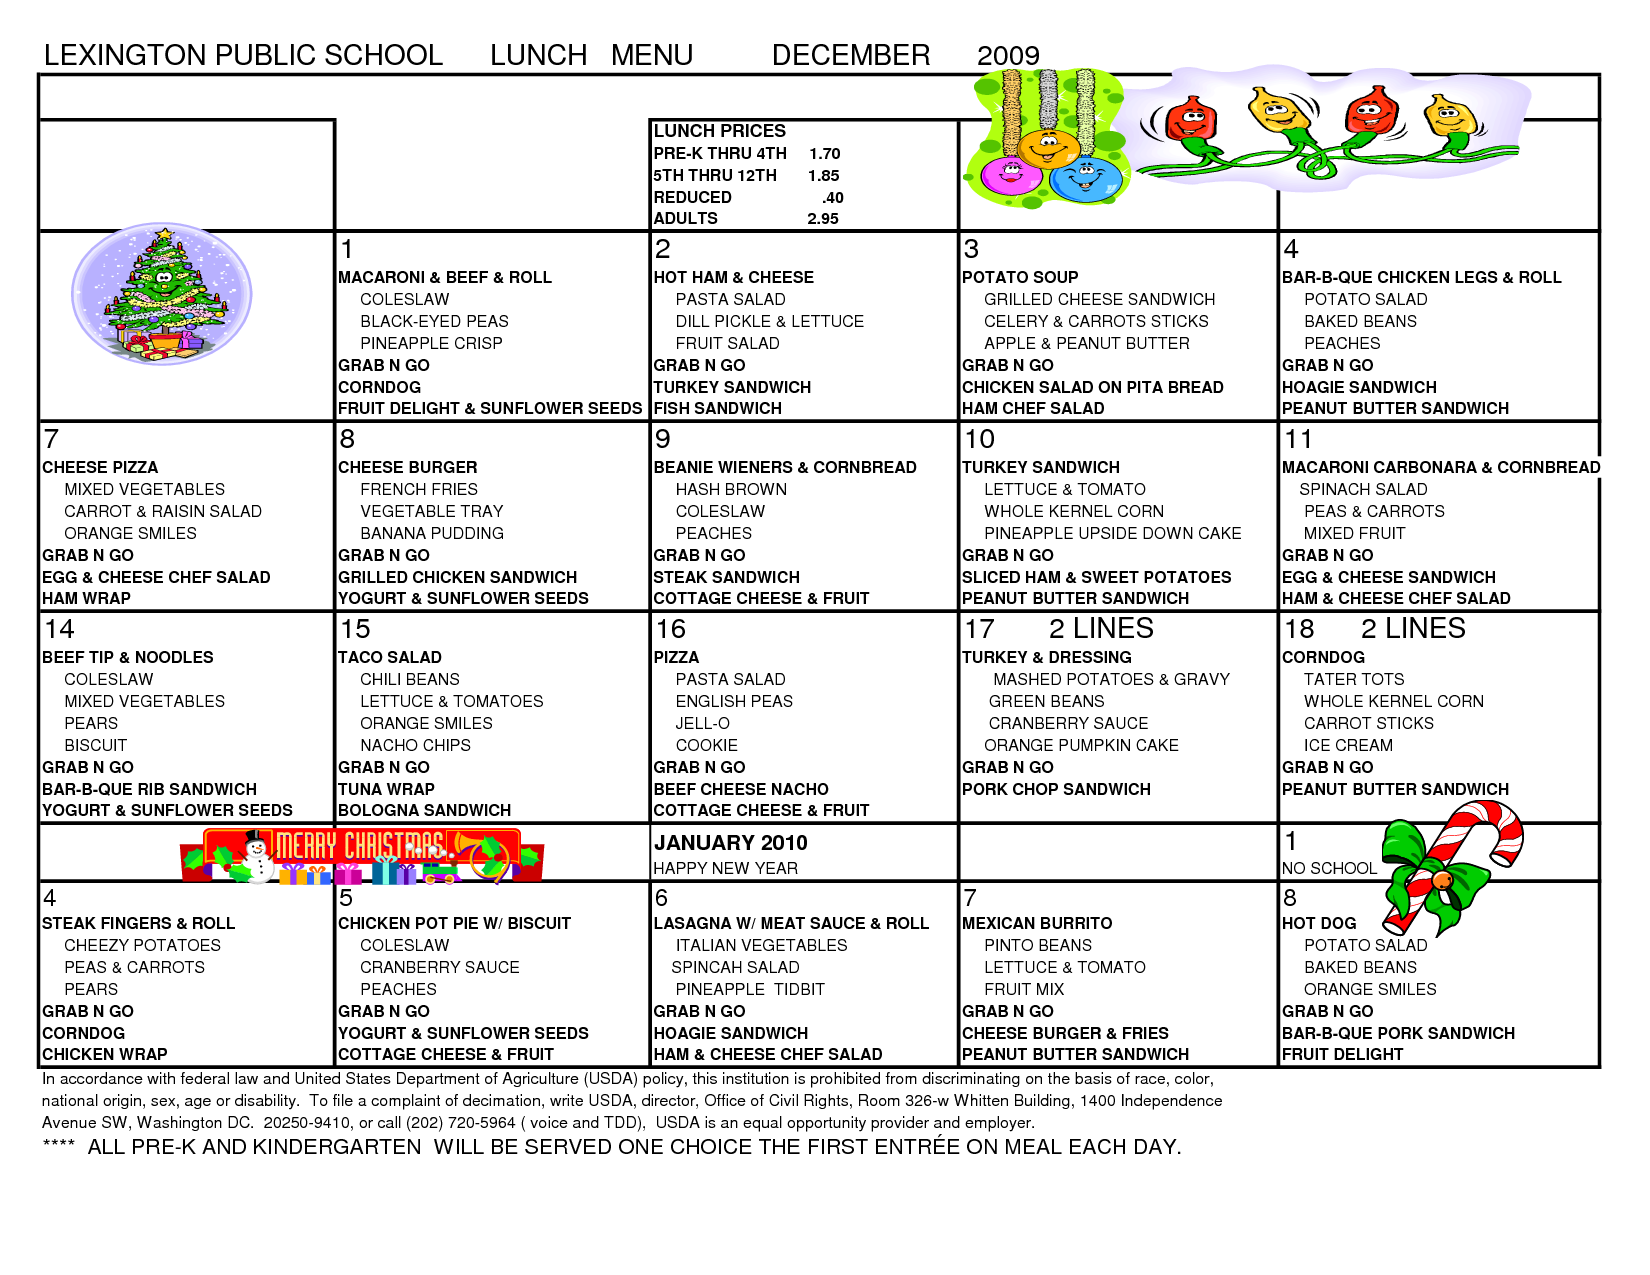 7 best images of school menu template printable school With free school lunch menu templates